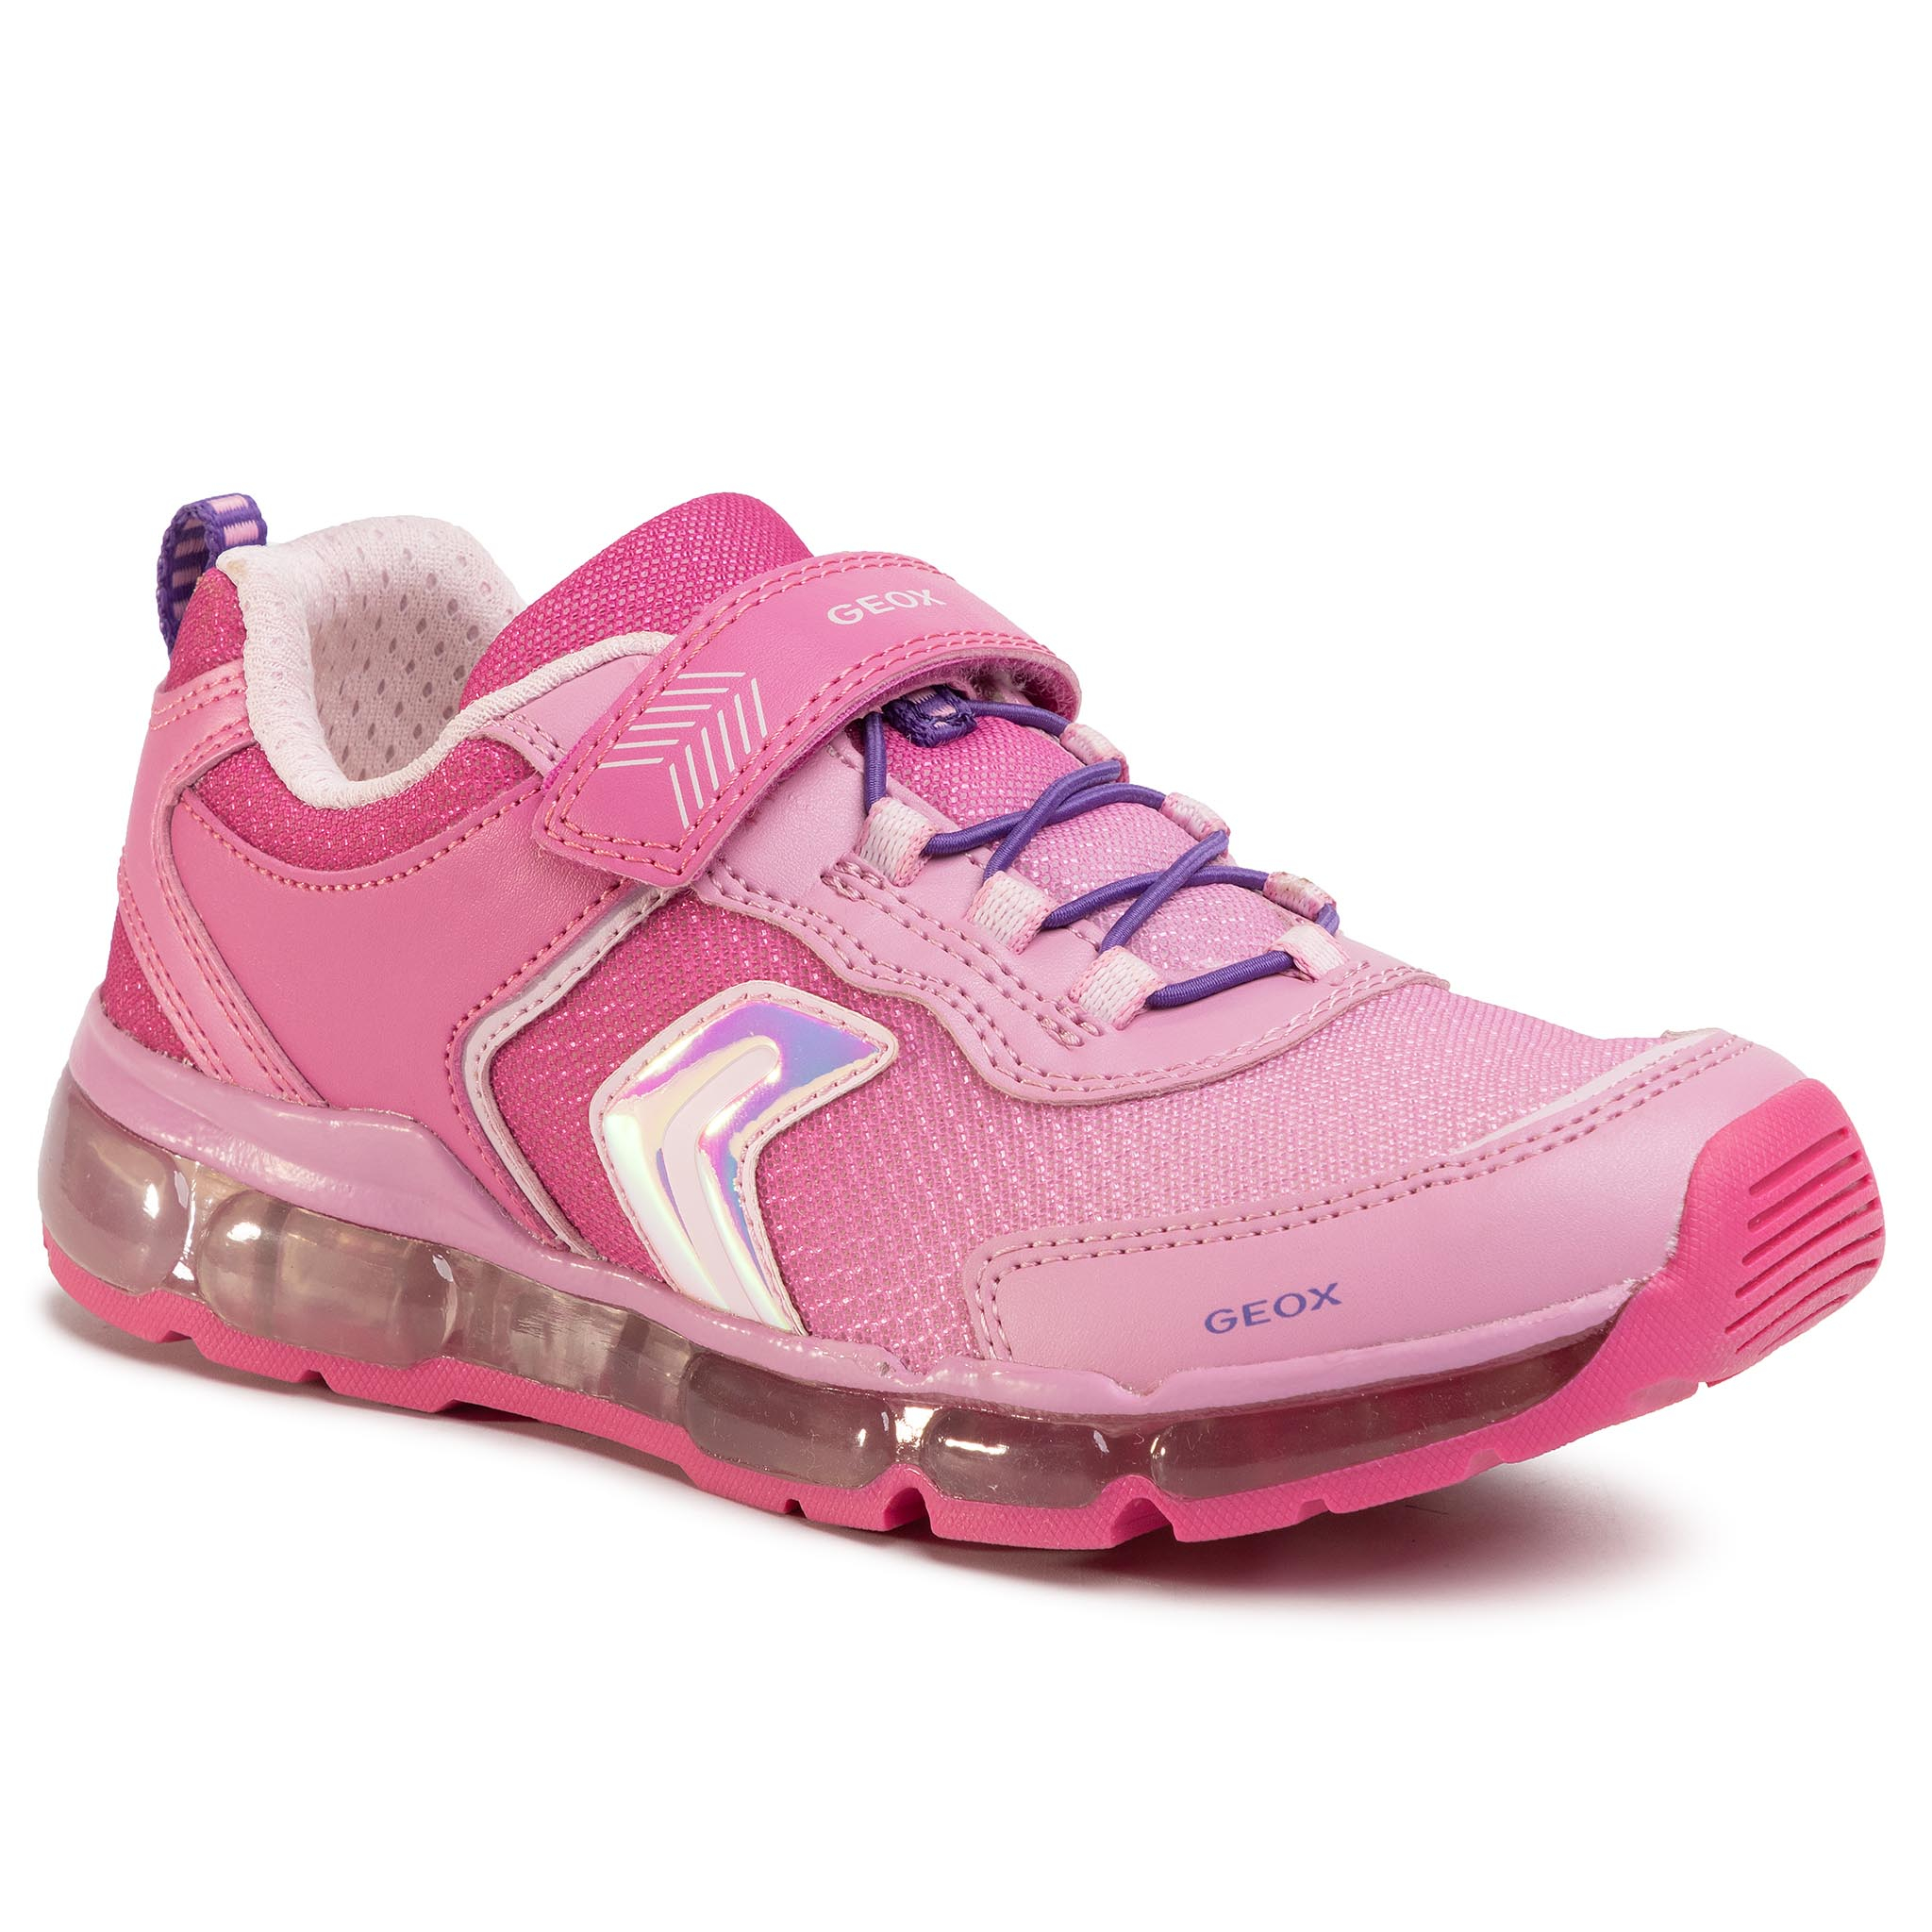 Sneakers GEOX - J Android G. A J0245A 014AJ C8002 D Fuchsia